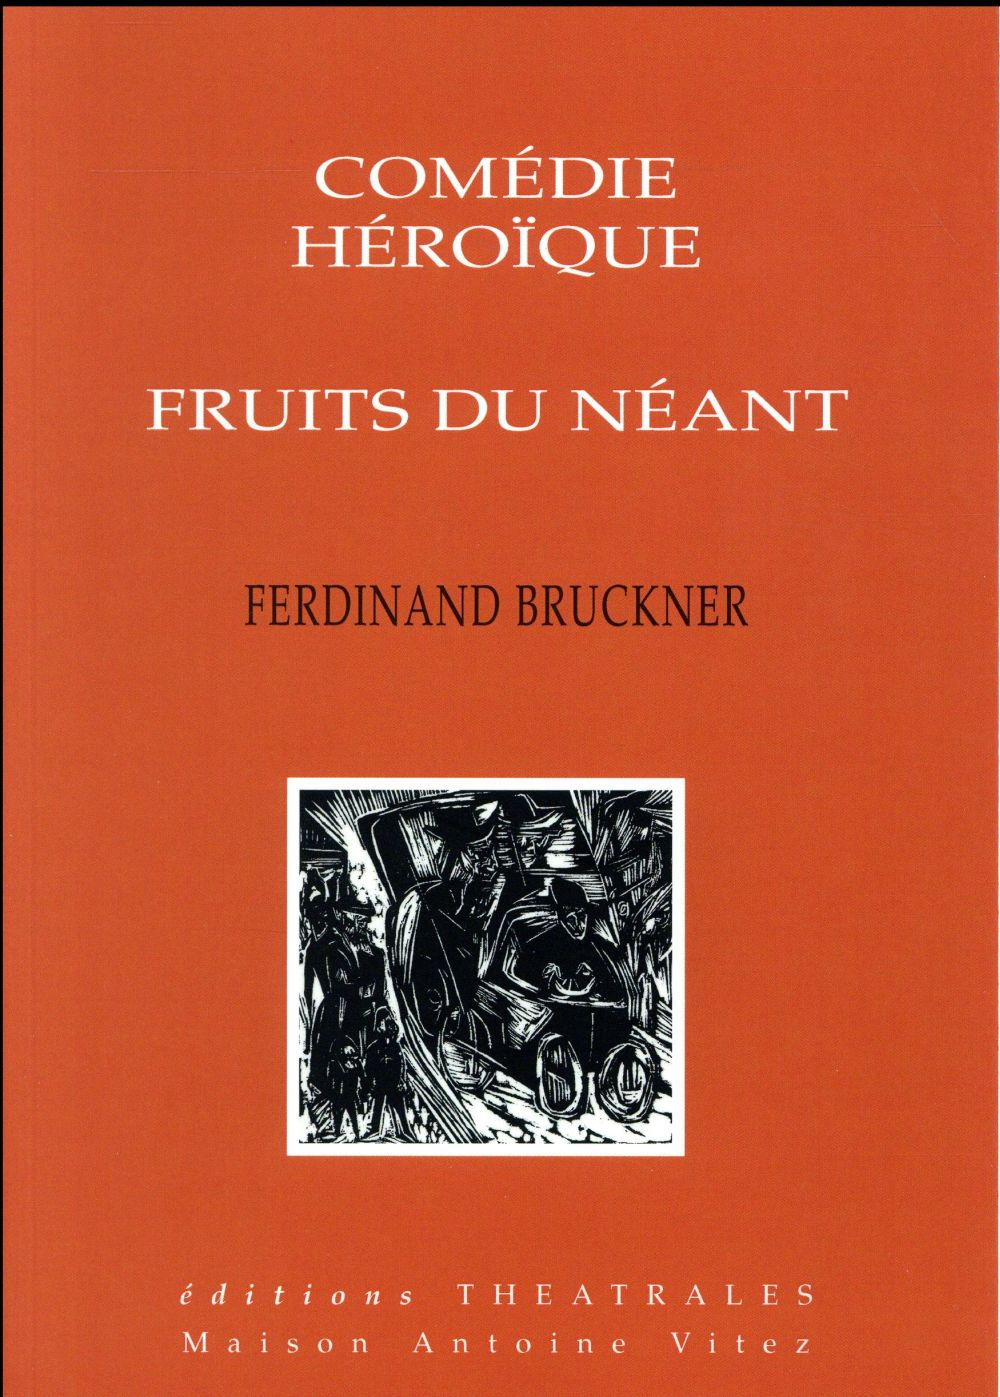 COMEDIE HEROIQUE FRUITS DU NEANT